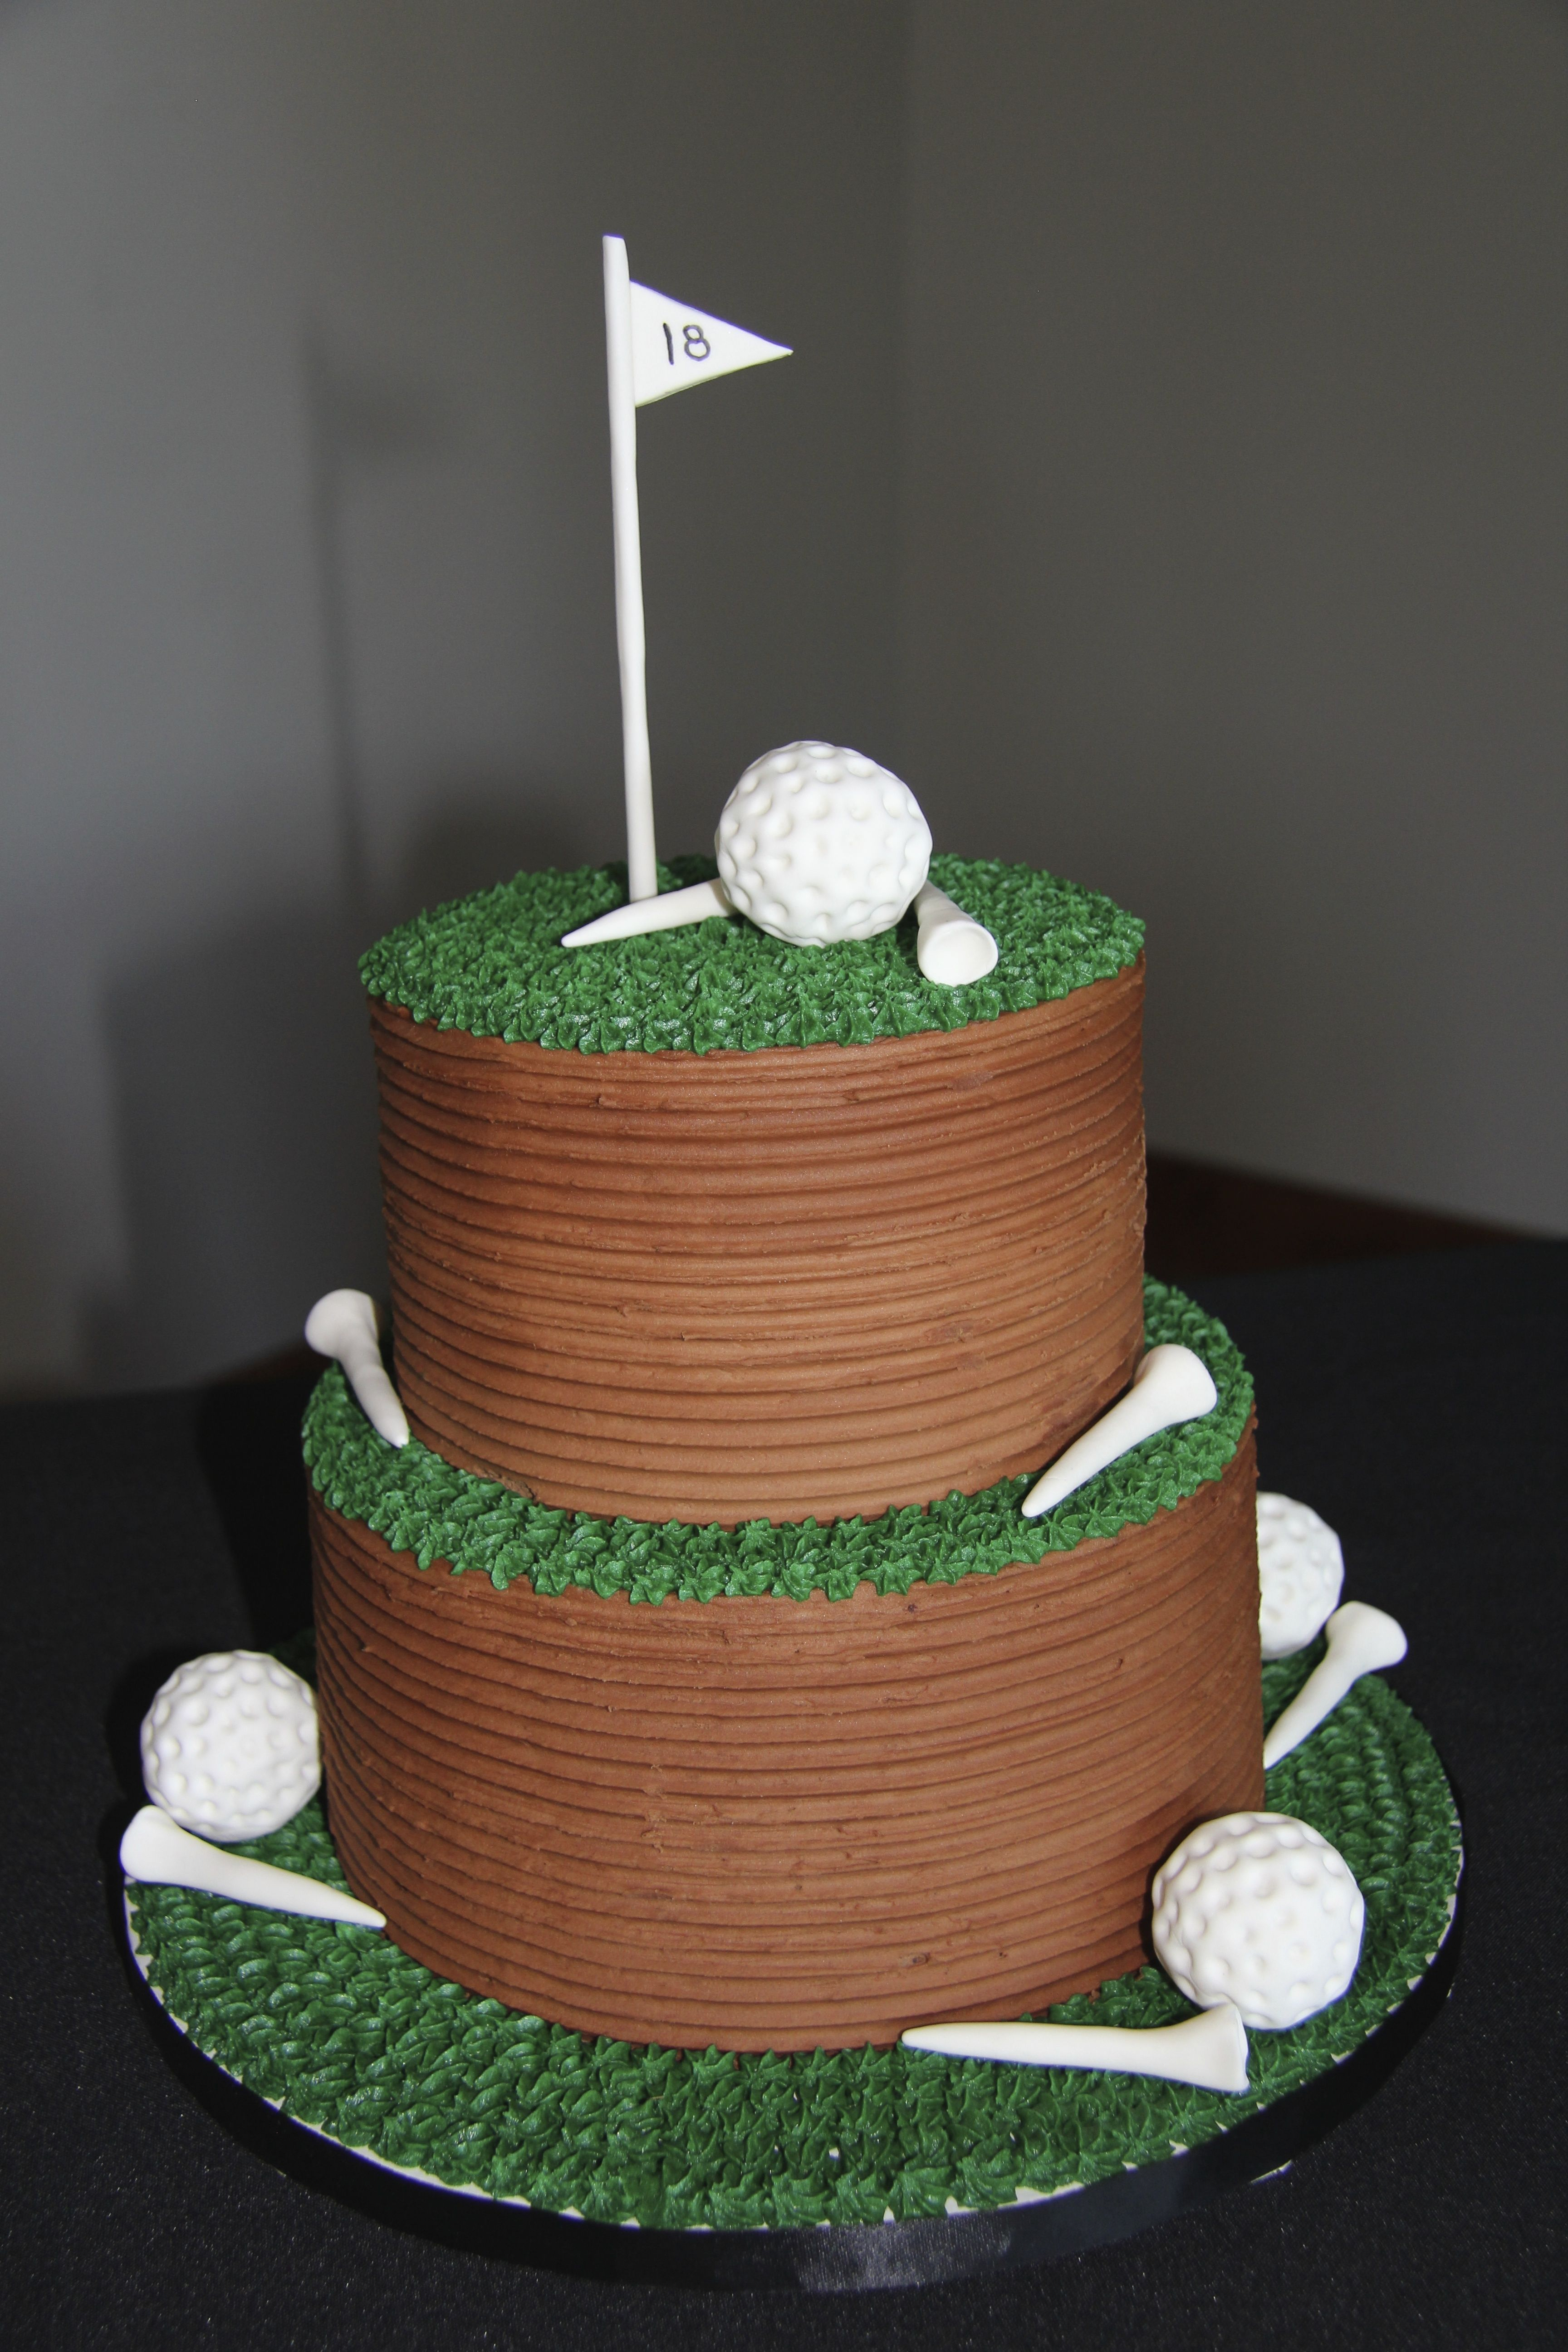 Wondrous Golf Grooms Cake With Images Golf Grooms Cake Golf Birthday Birthday Cards Printable Trancafe Filternl